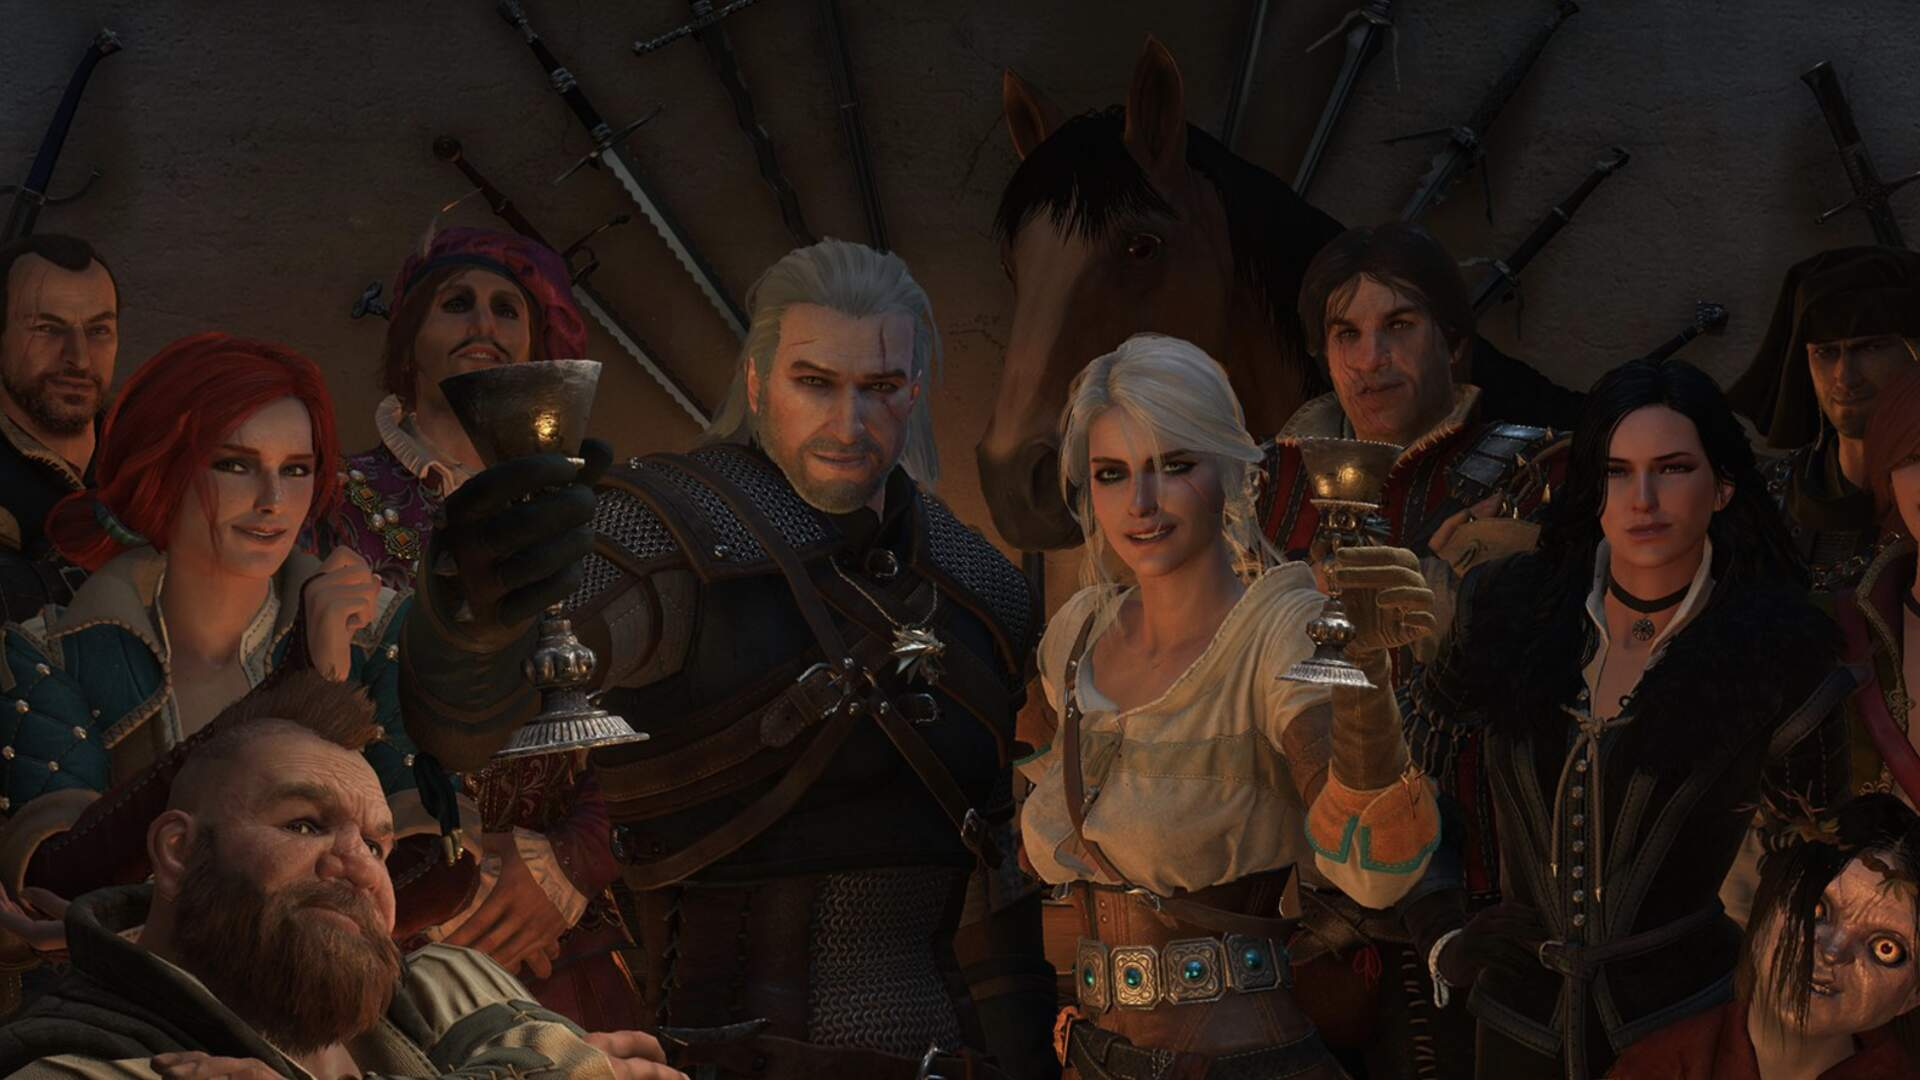 THQ Nordic's Parent Company Acquires The Witcher 3's Switch Port Developer